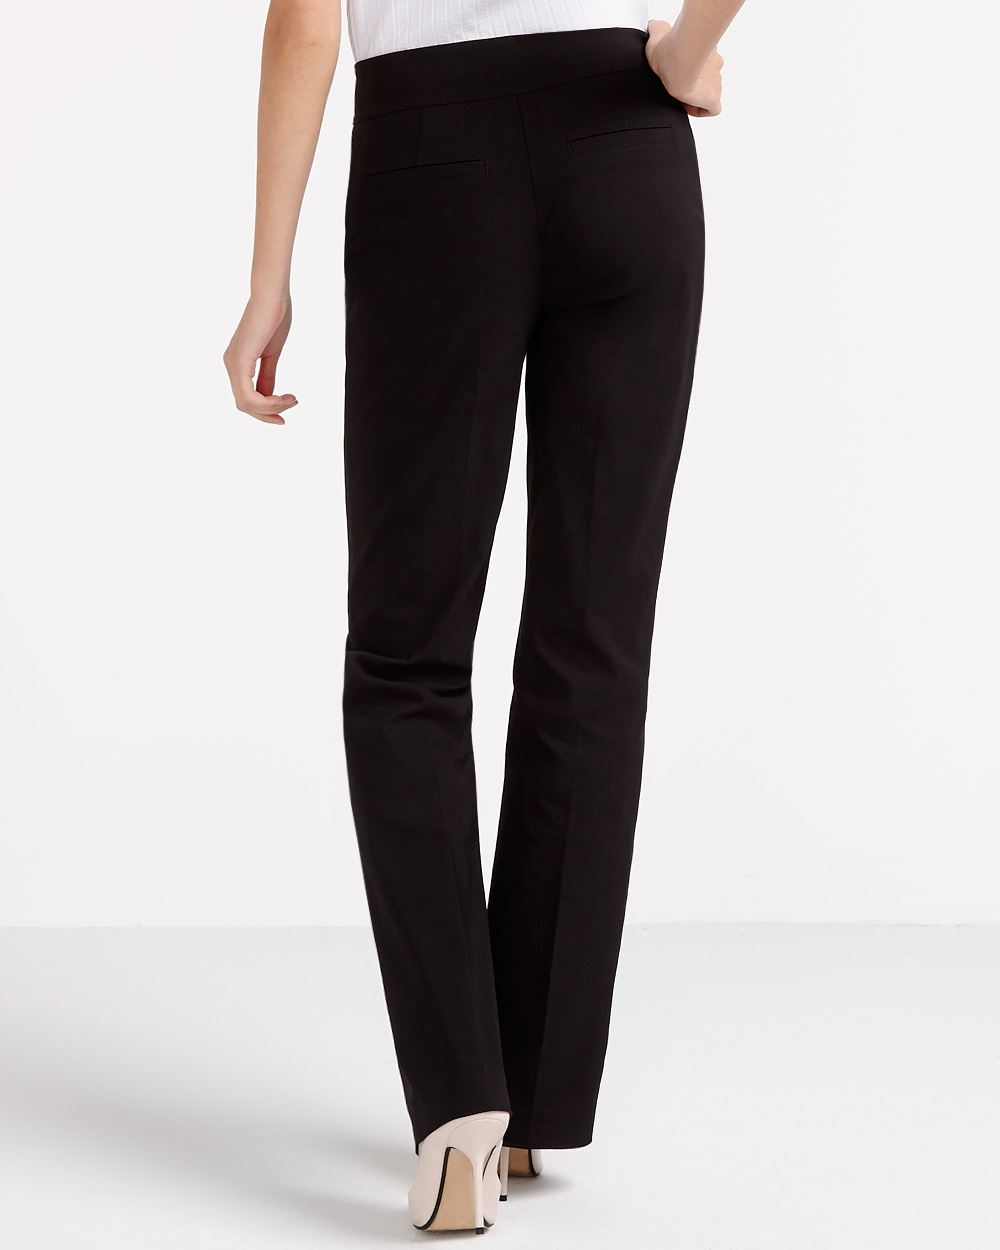 The Iconic Ultra Petite Boot Cut Comfort Pants